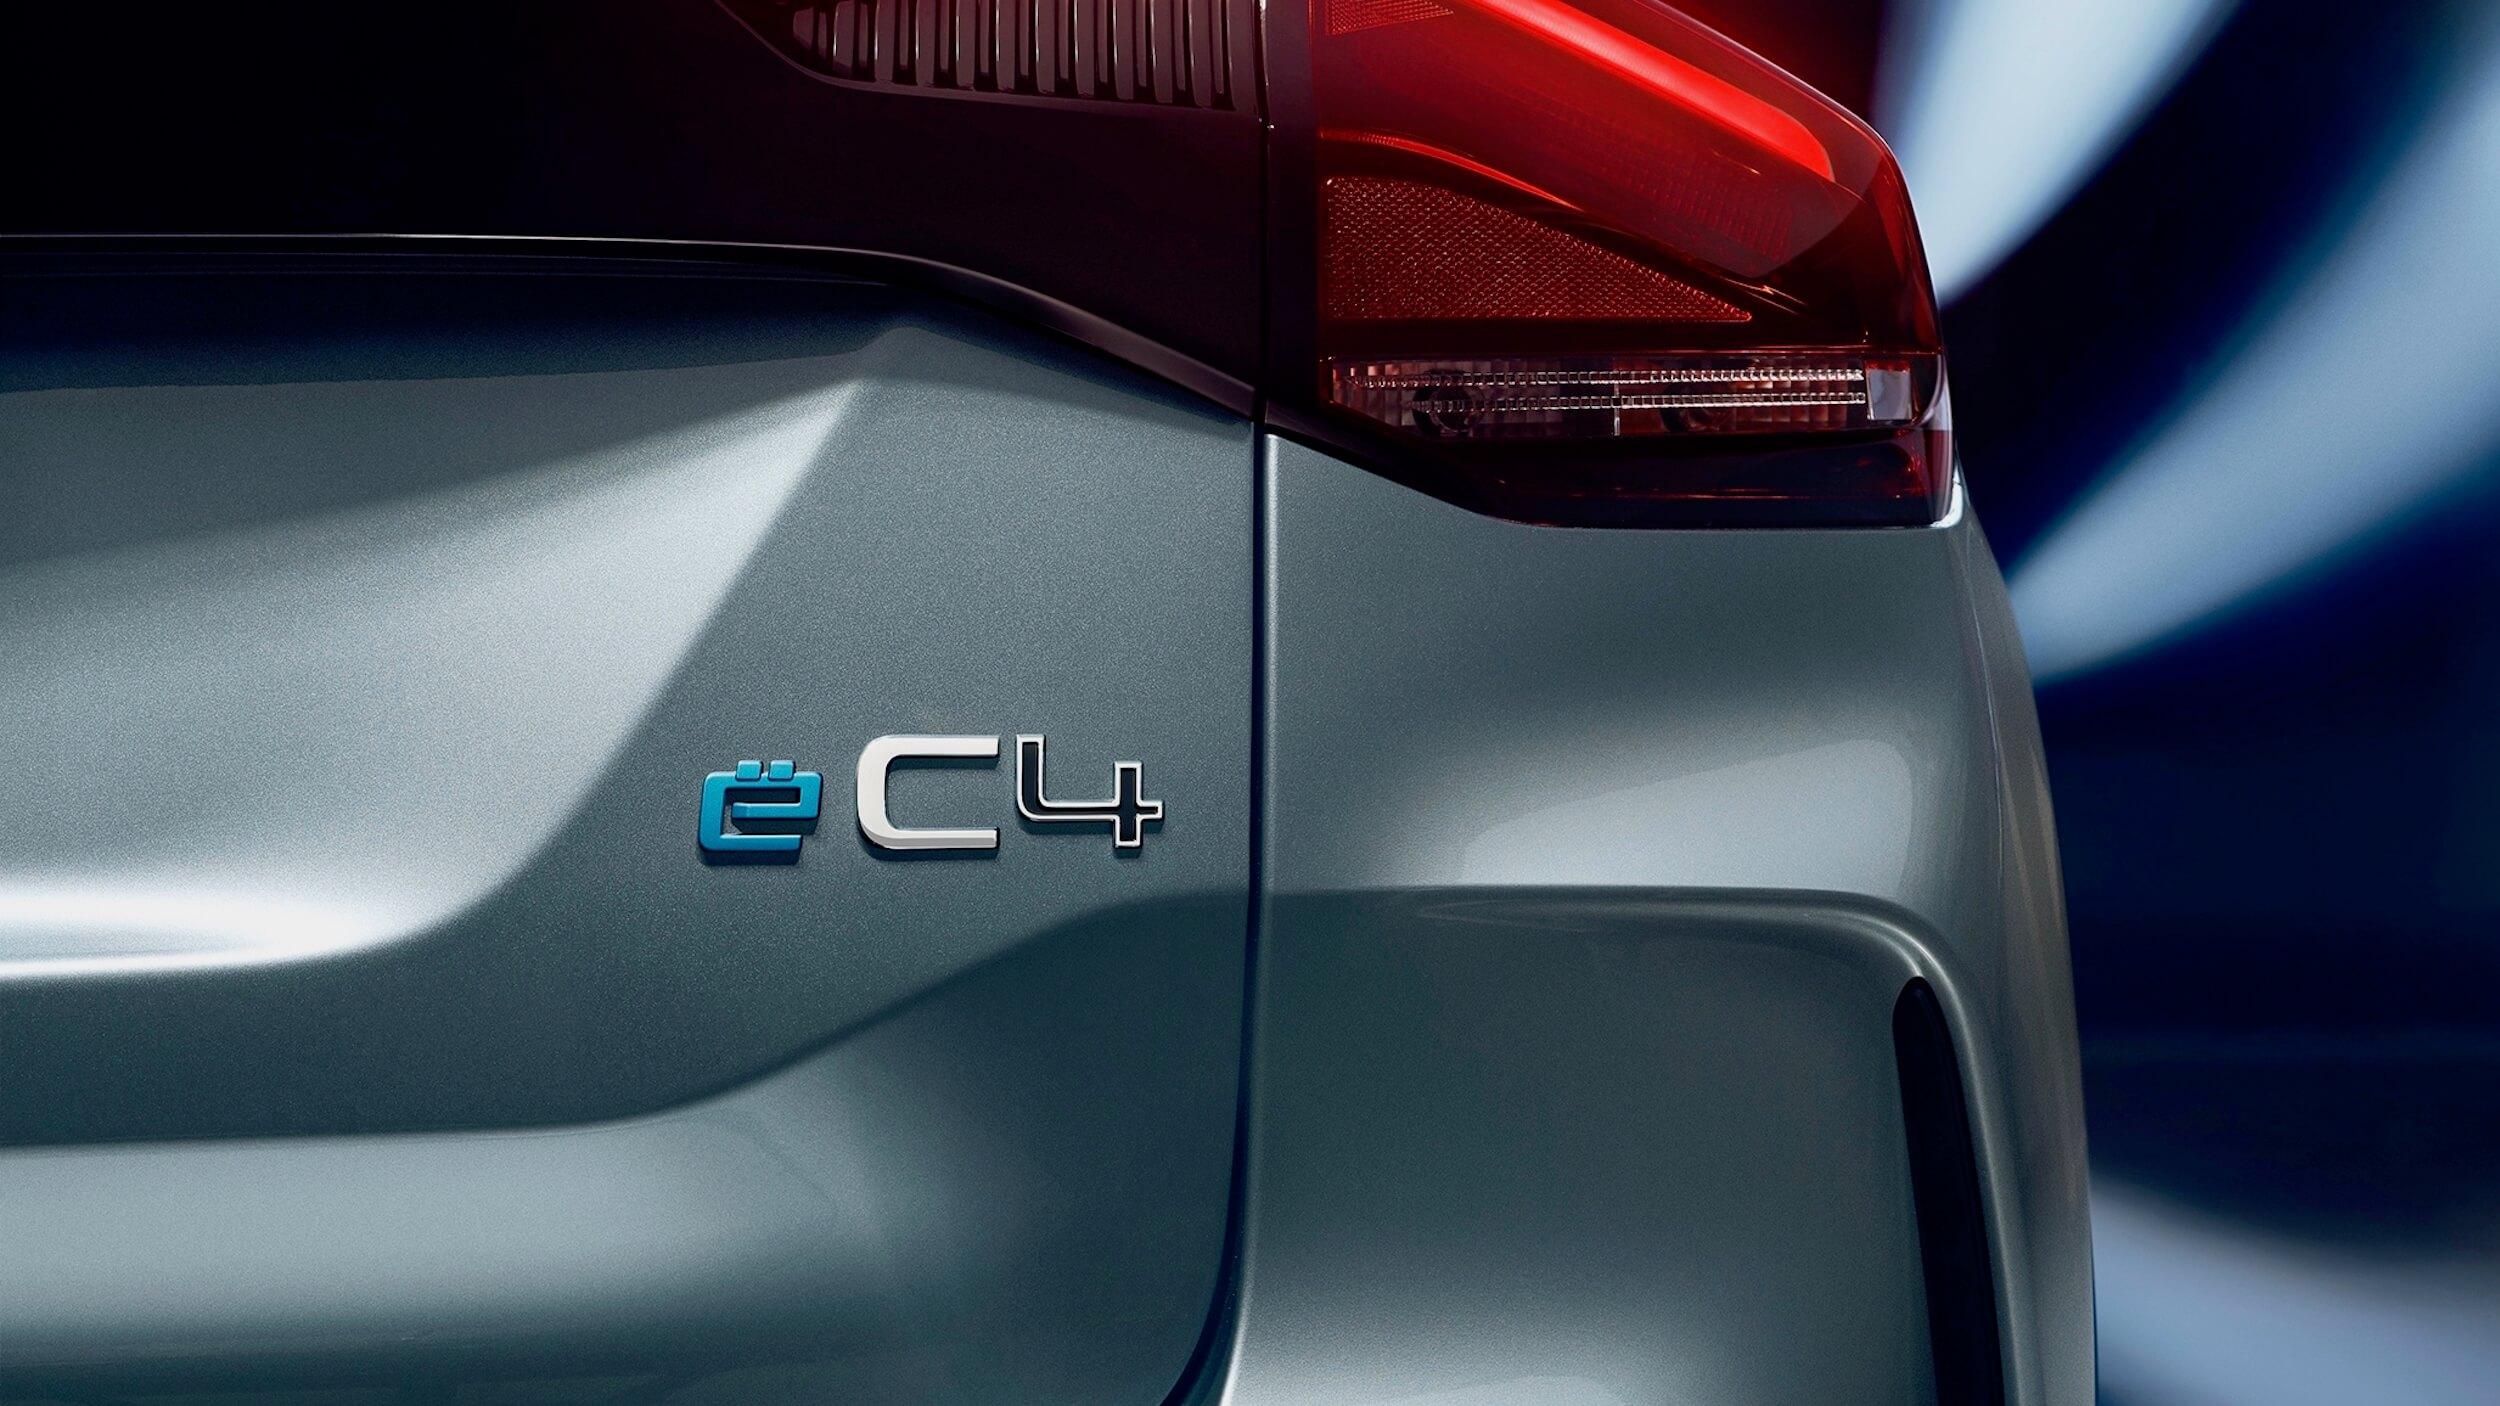 Citroën ë C4 badge